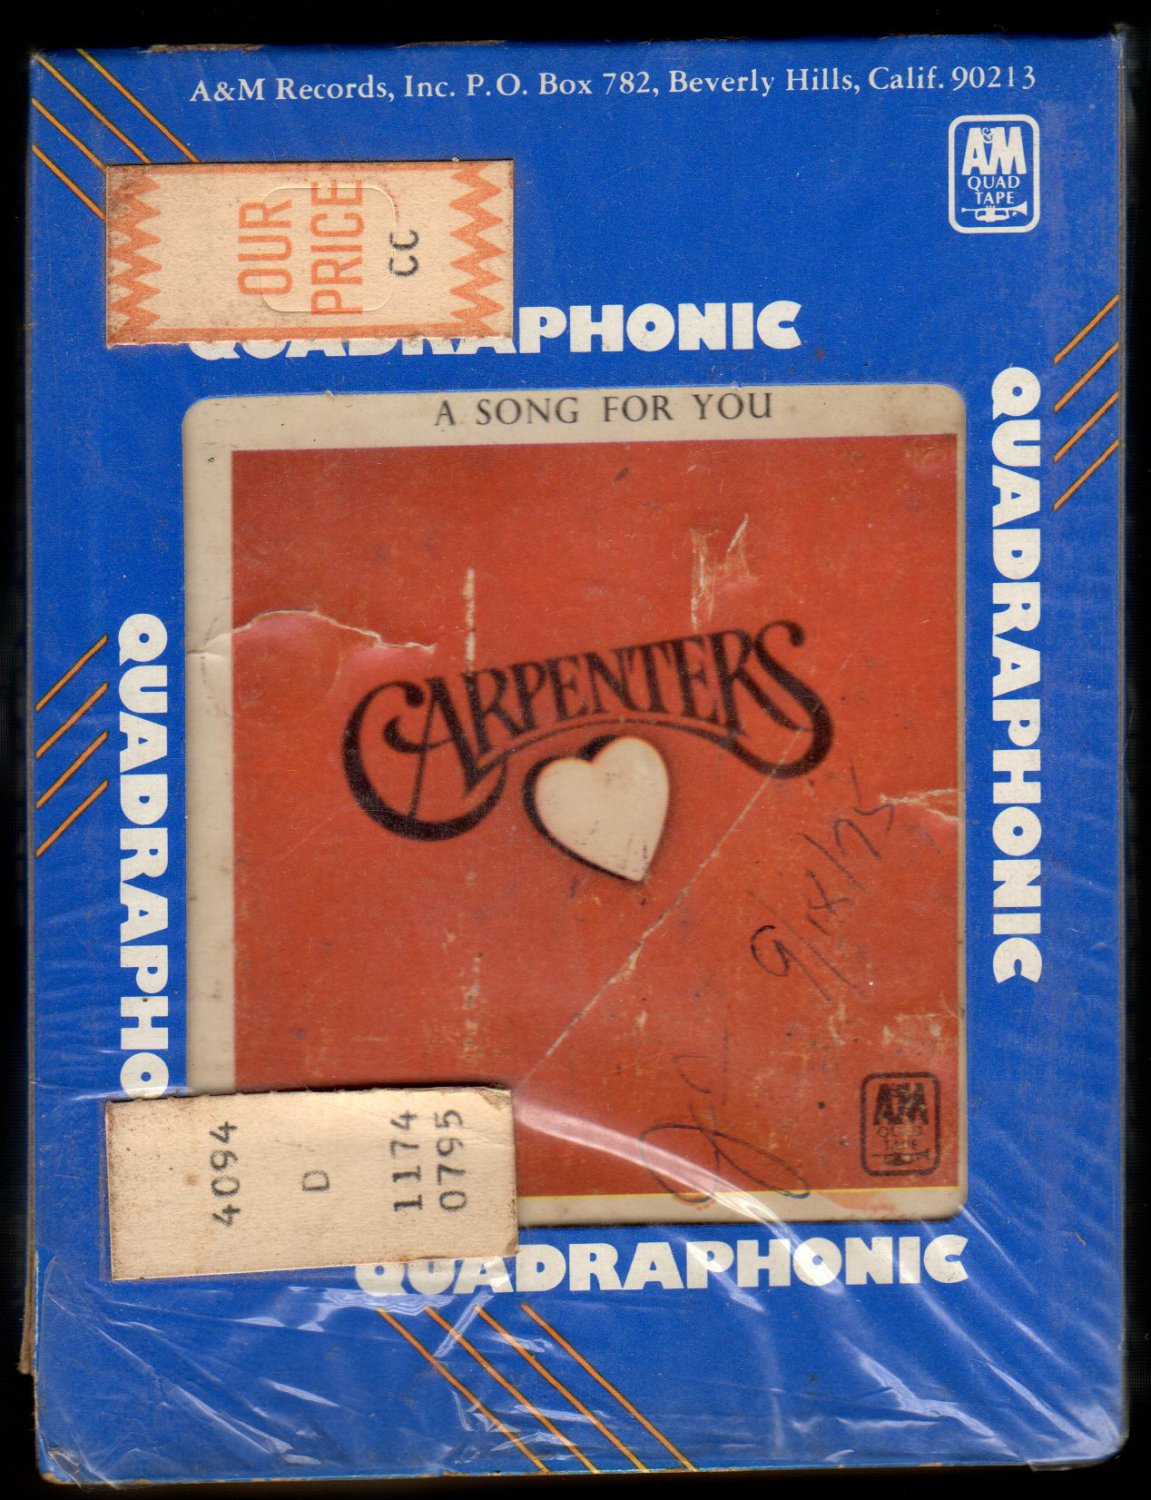 The Carpenters - A Song For You 1972 A&M Quadraphonic A15 8-TRACK TAPE